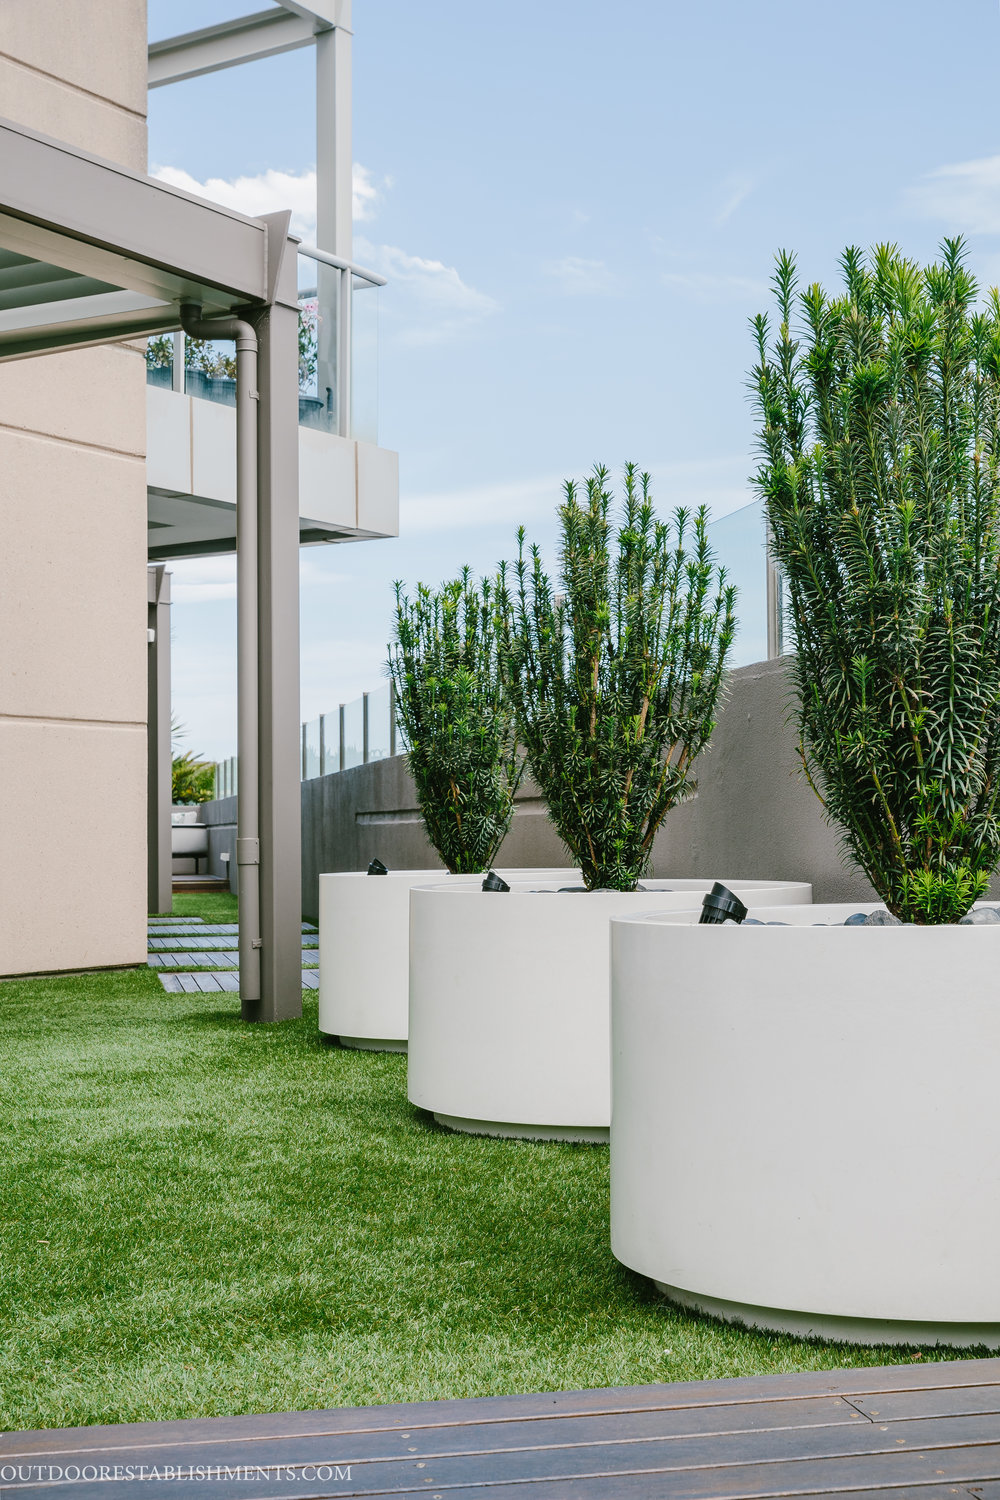 GRC planters on rooftop garden Outdoor Establishments